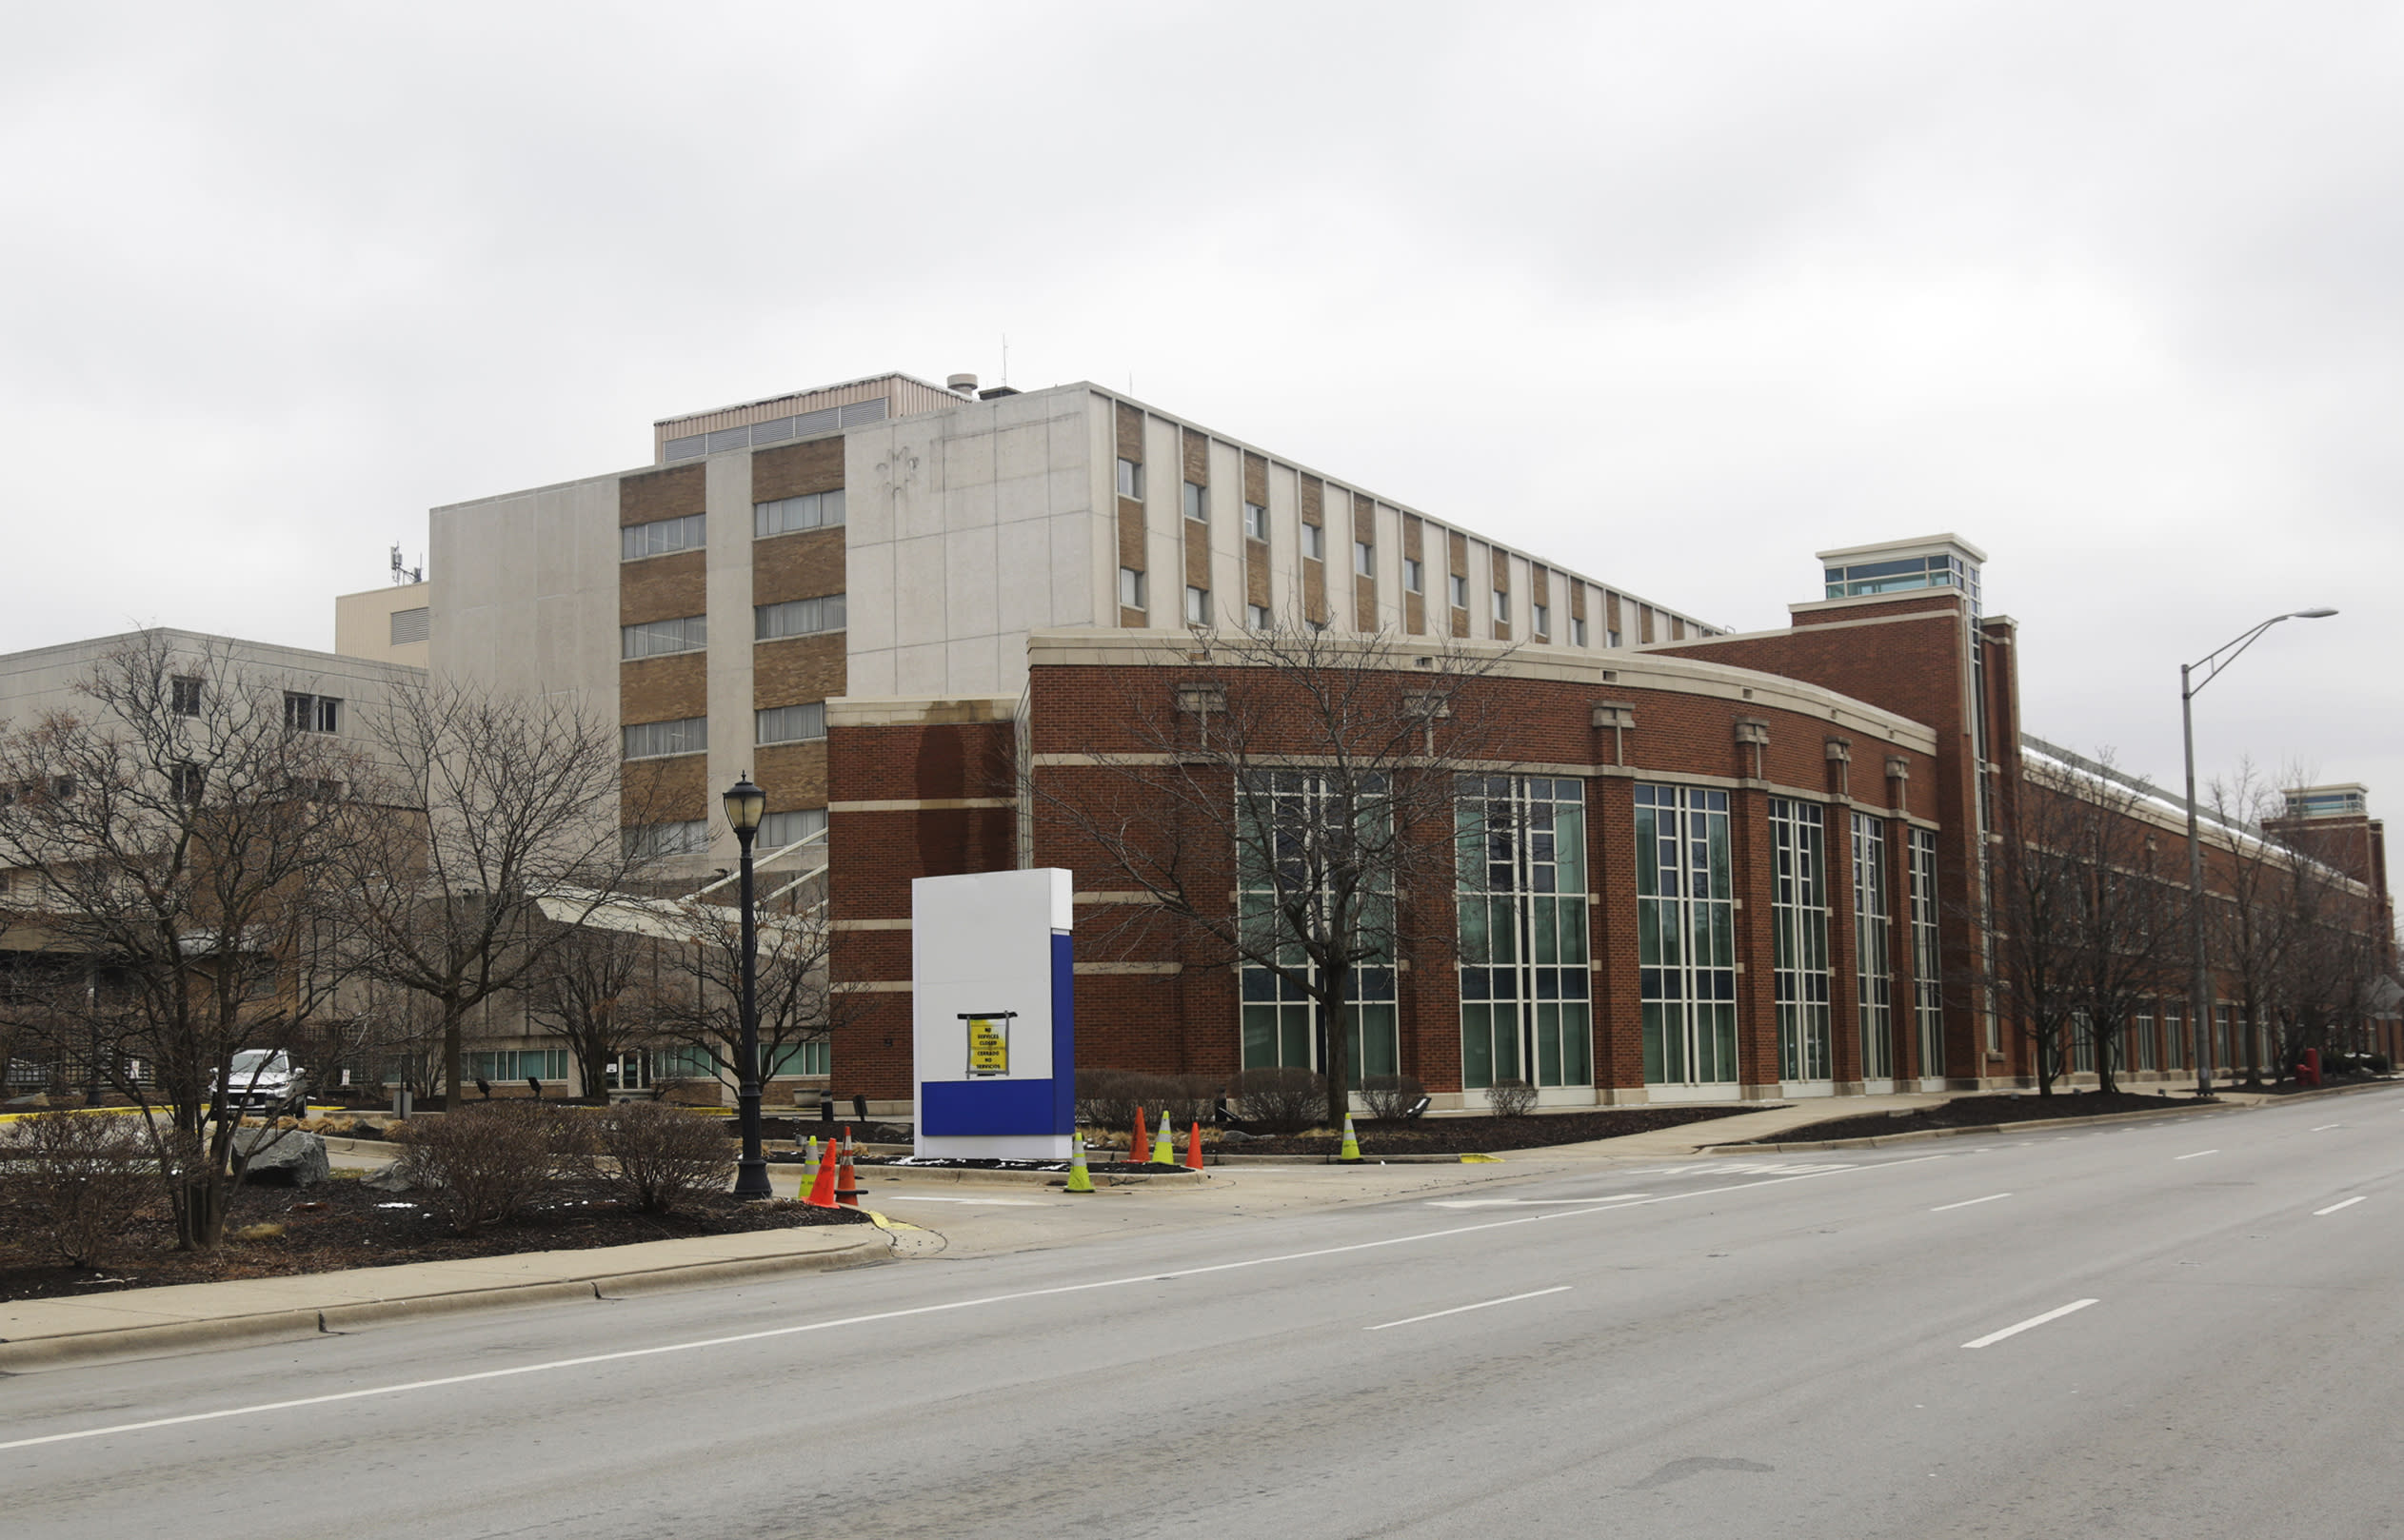 This March 23, 2020 photo shows the former MetroSouth Medical Center in Blue Island, Ill. U.S. hospitals are rushing to find beds for a coming flood of COVID-19 patients, opening older closed hospitals and re-purposing other medical buildings. (AP Photo/M. Spencer Green)